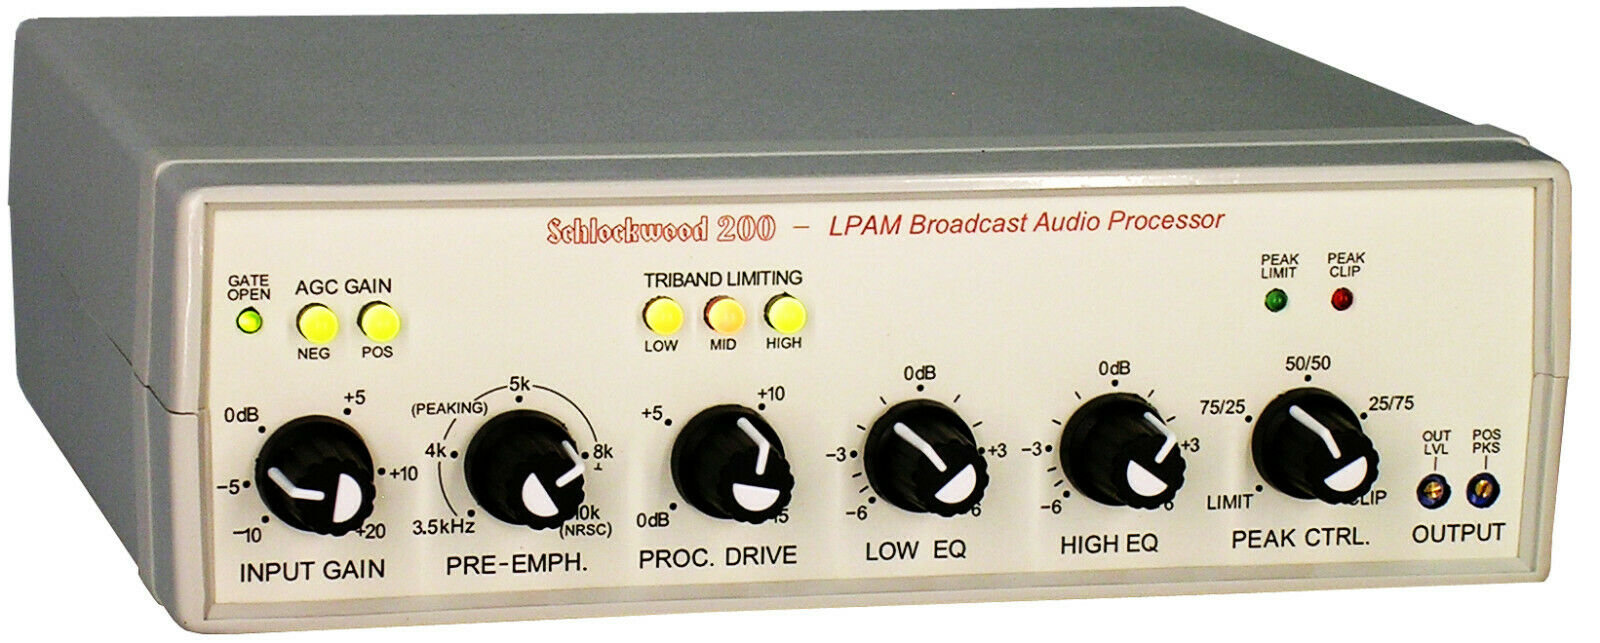 Multiband Audio Processor for AM Broadcasting - SW200 2021 RUN SHIPPING NOW!!!. Buy it now for 435.00